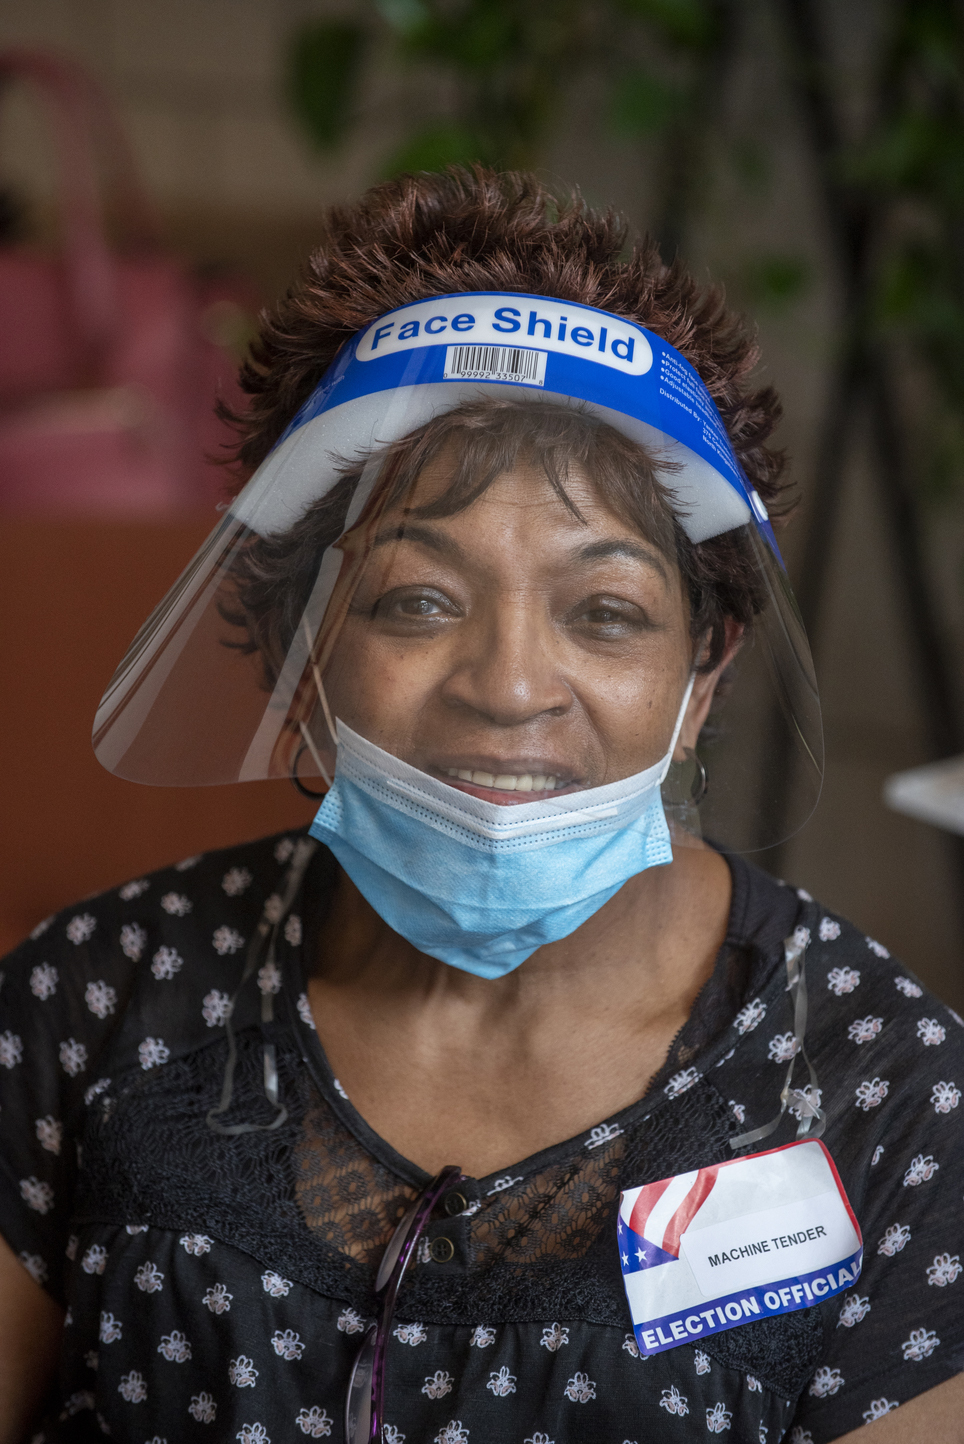 A portrait photo of a poll worker wearing a face shield and mask